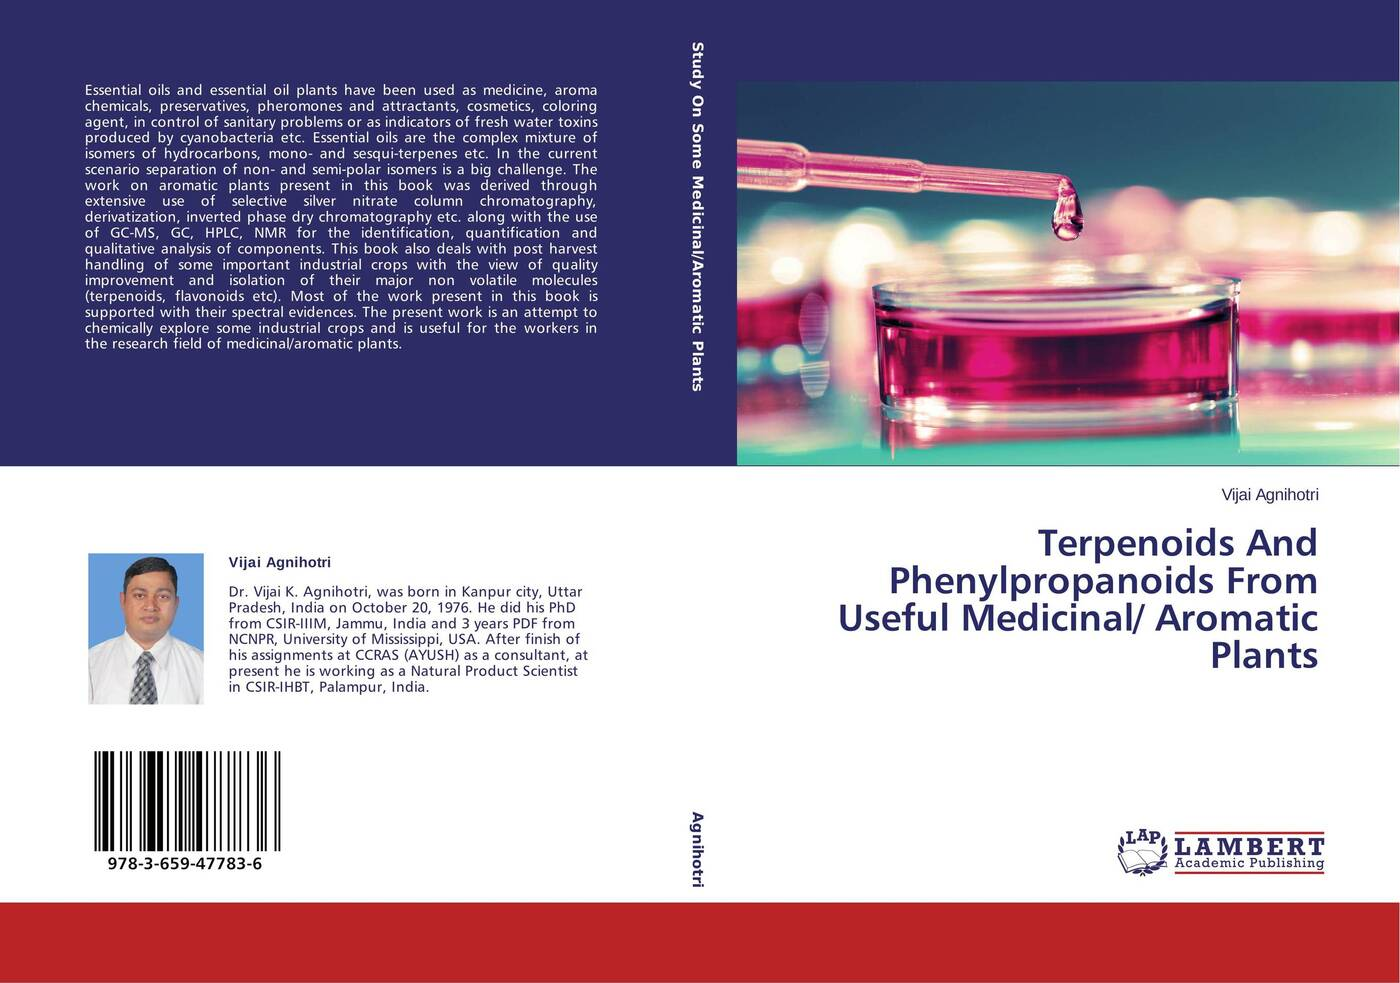 Vijai Agnihotri Terpenoids And Phenylpropanoids From Useful Medicinal/ Aromatic Plants цена